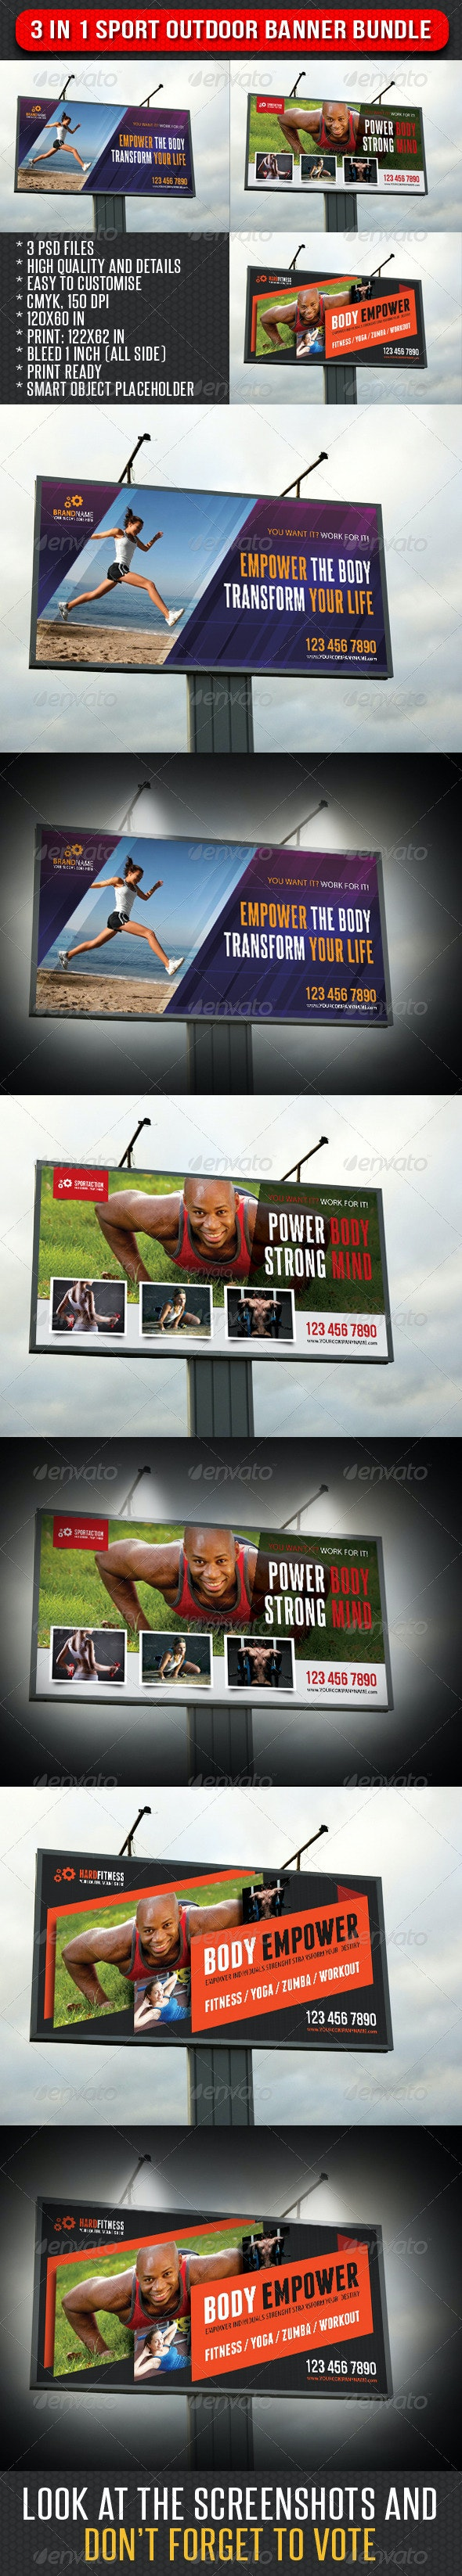 3 in 1 Sport Outdoor Banner Bundle 05 - Signage Print Templates